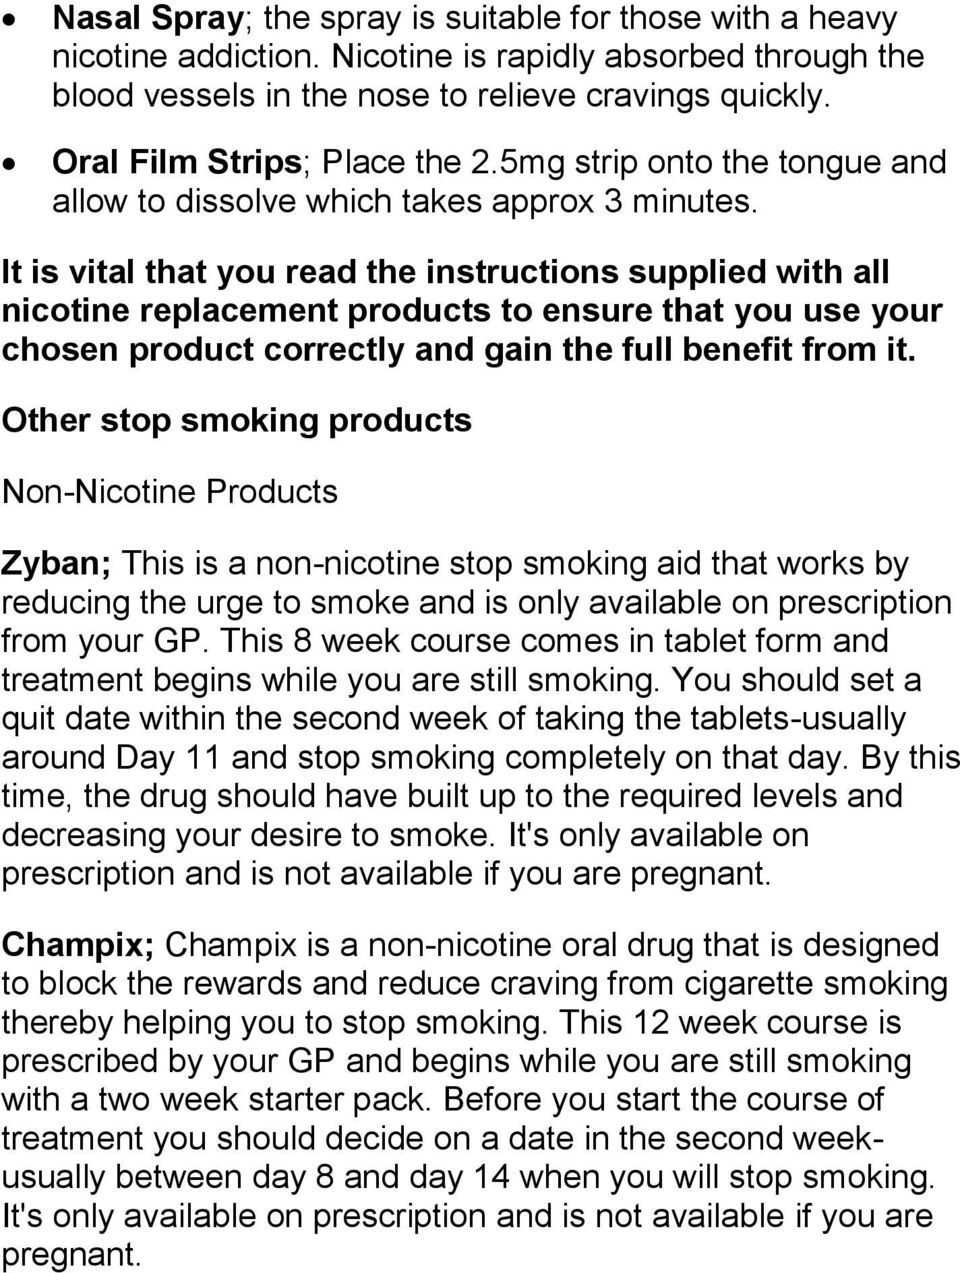 It is vital that you read the instructions supplied with all nicotine replacement products to ensure that you use your chosen product correctly and gain the full benefit from it.